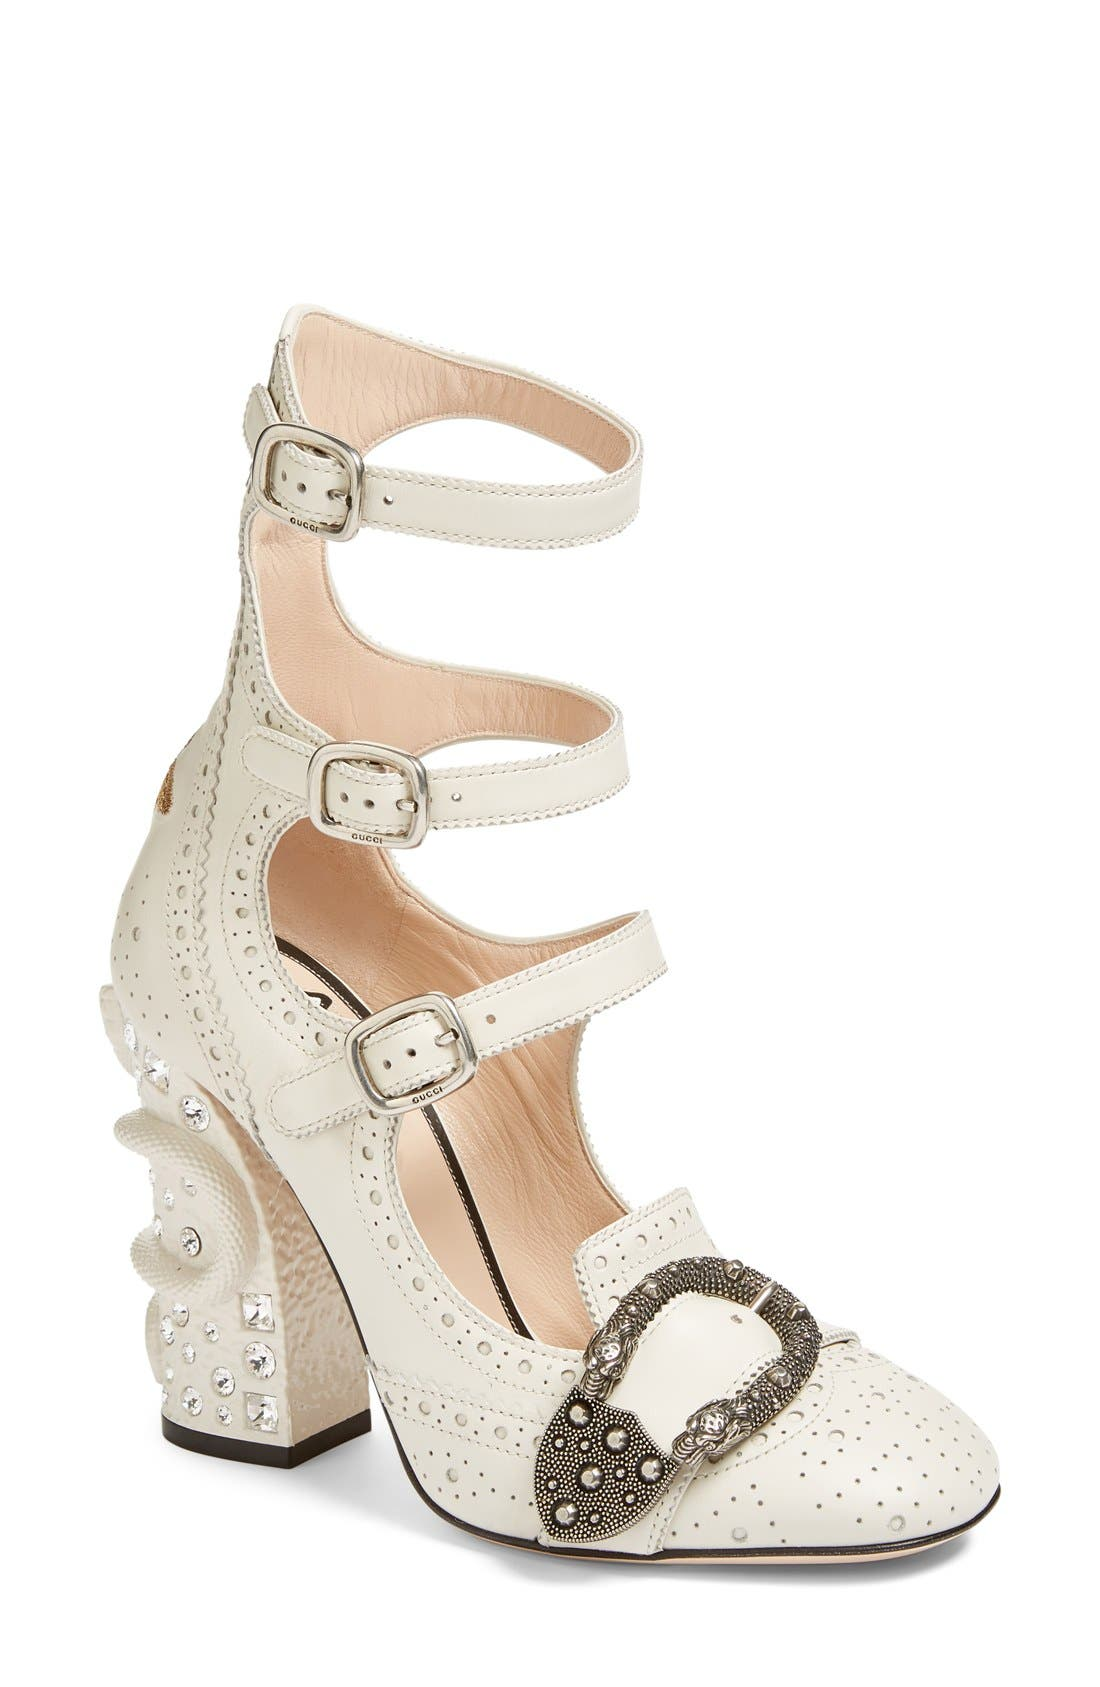 Alternate Image 1 Selected - Gucci Queercore Embellished Gladiator Pump (Women)